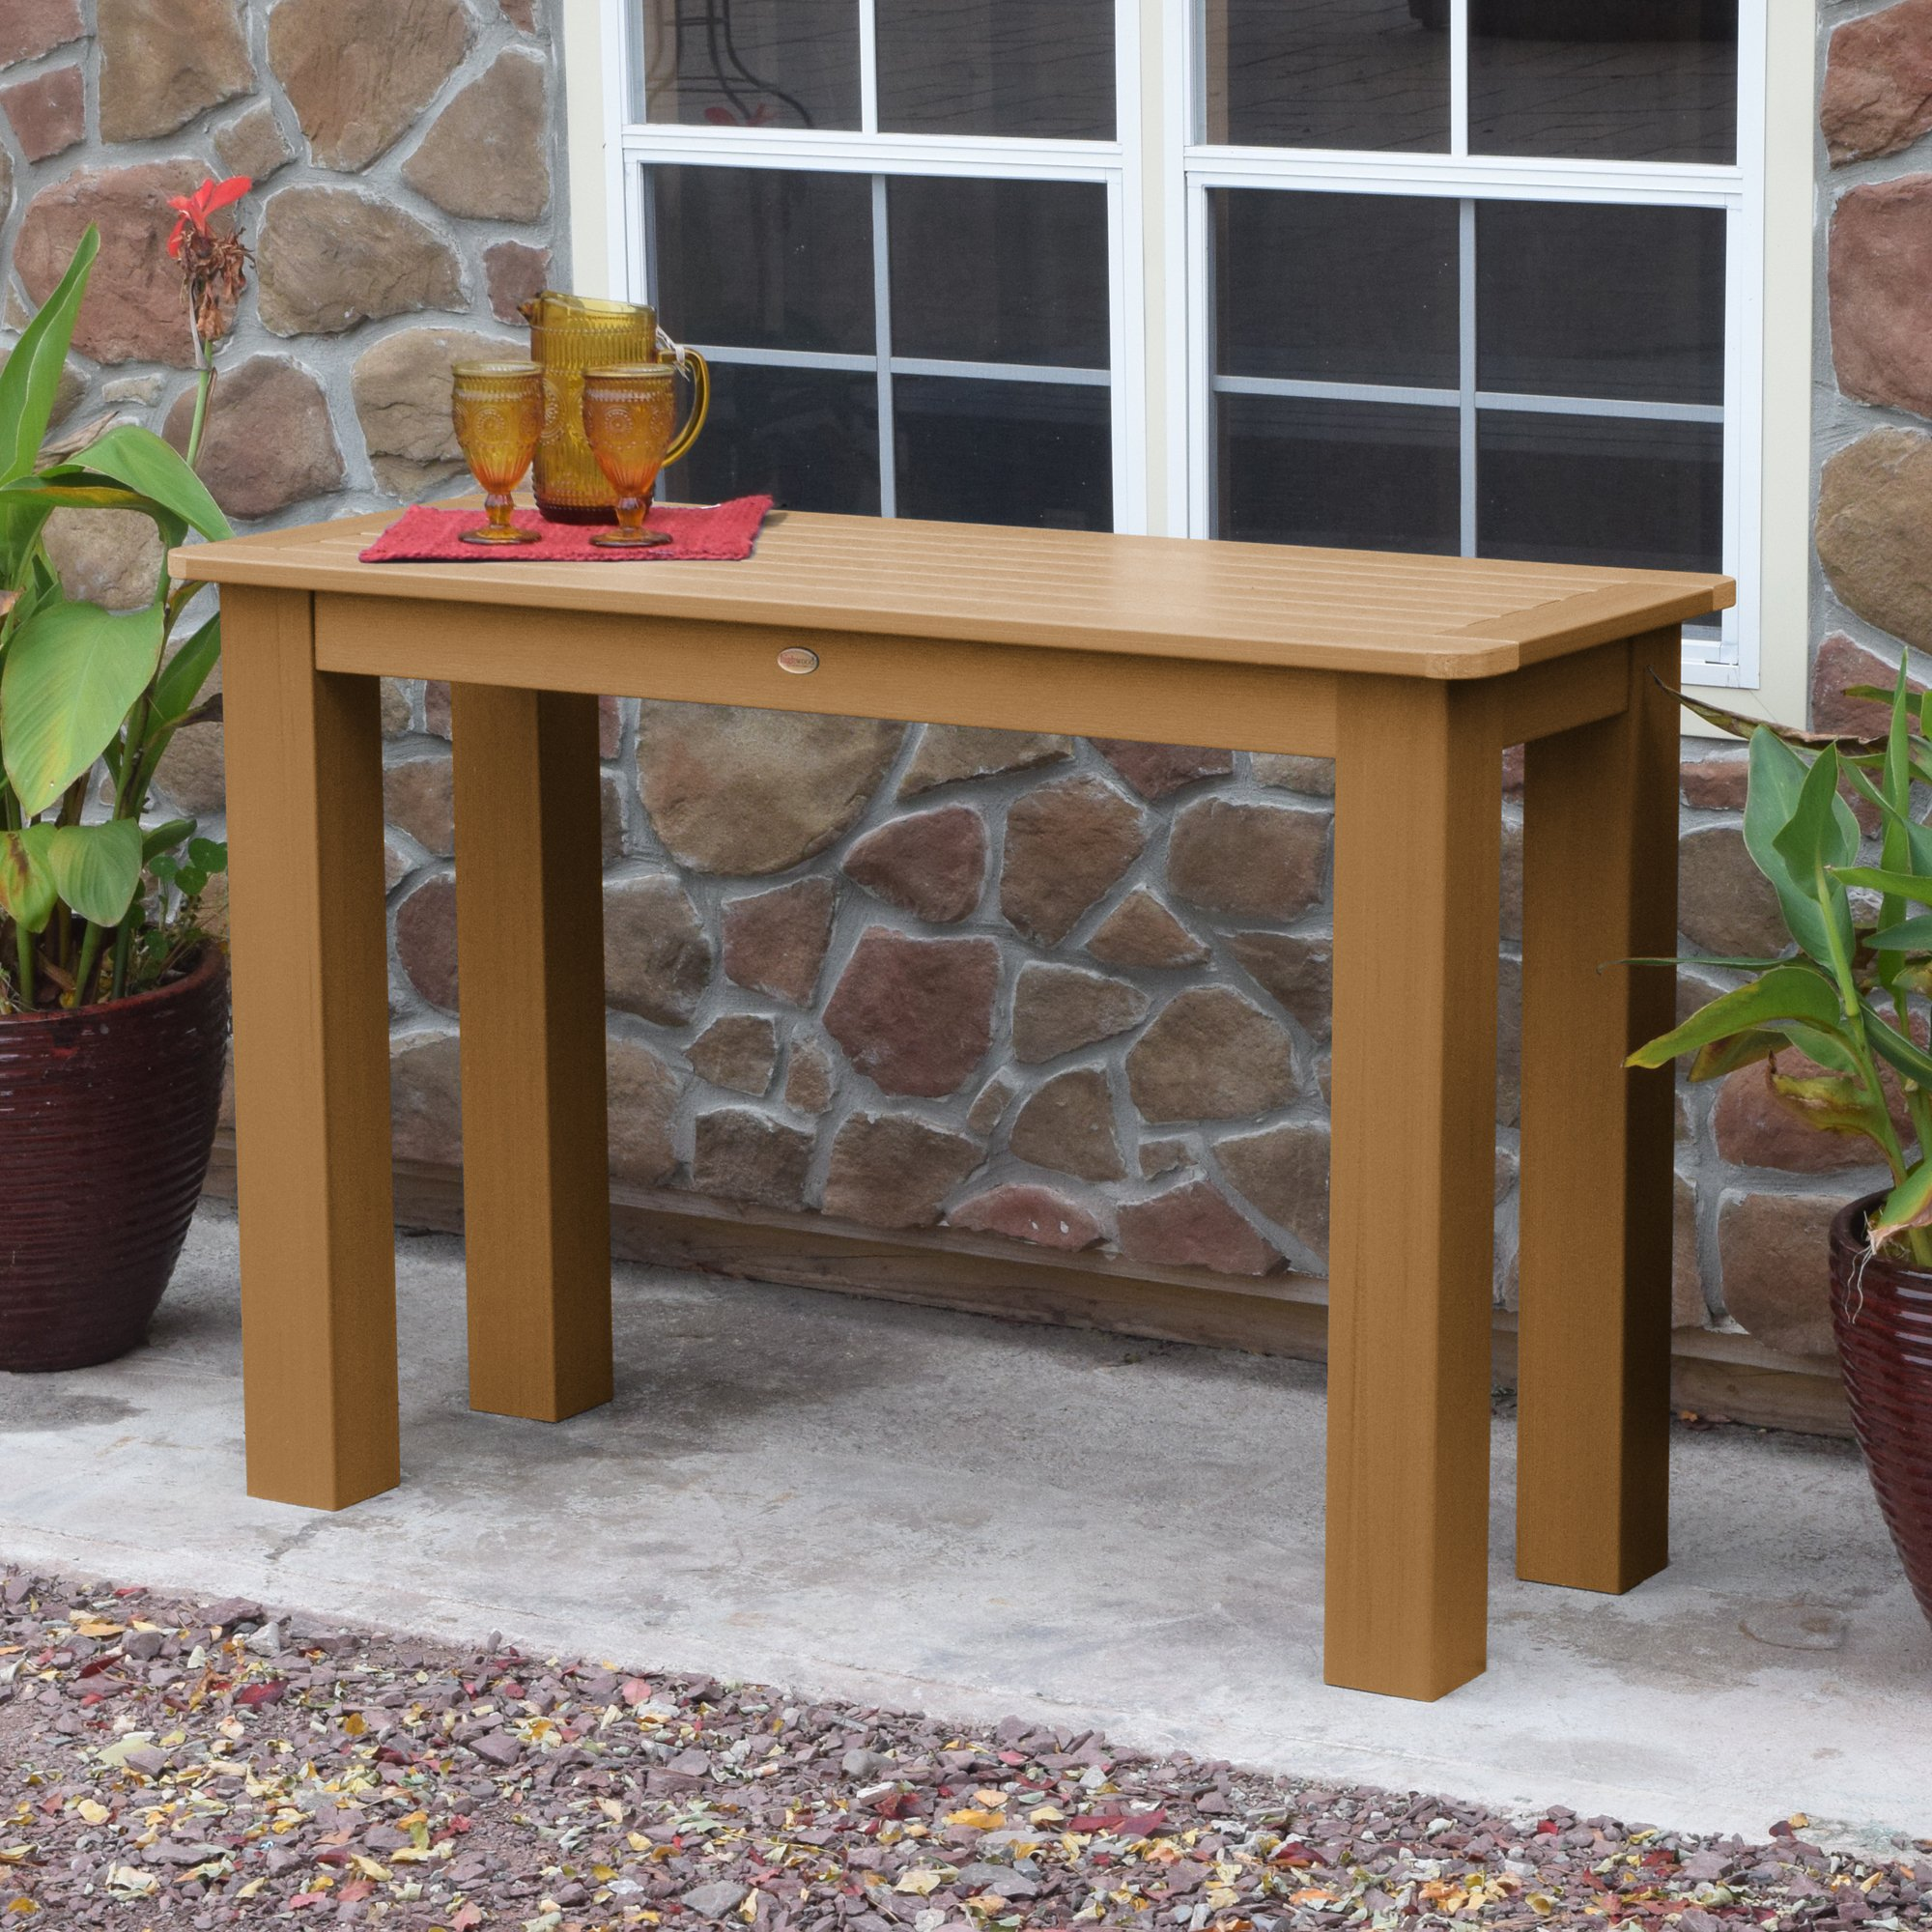 highwood outdoor counter height sideboard table the charming bench tfe folding side mission style lamps office furniture portland baby changing pad accent for living room acrylic